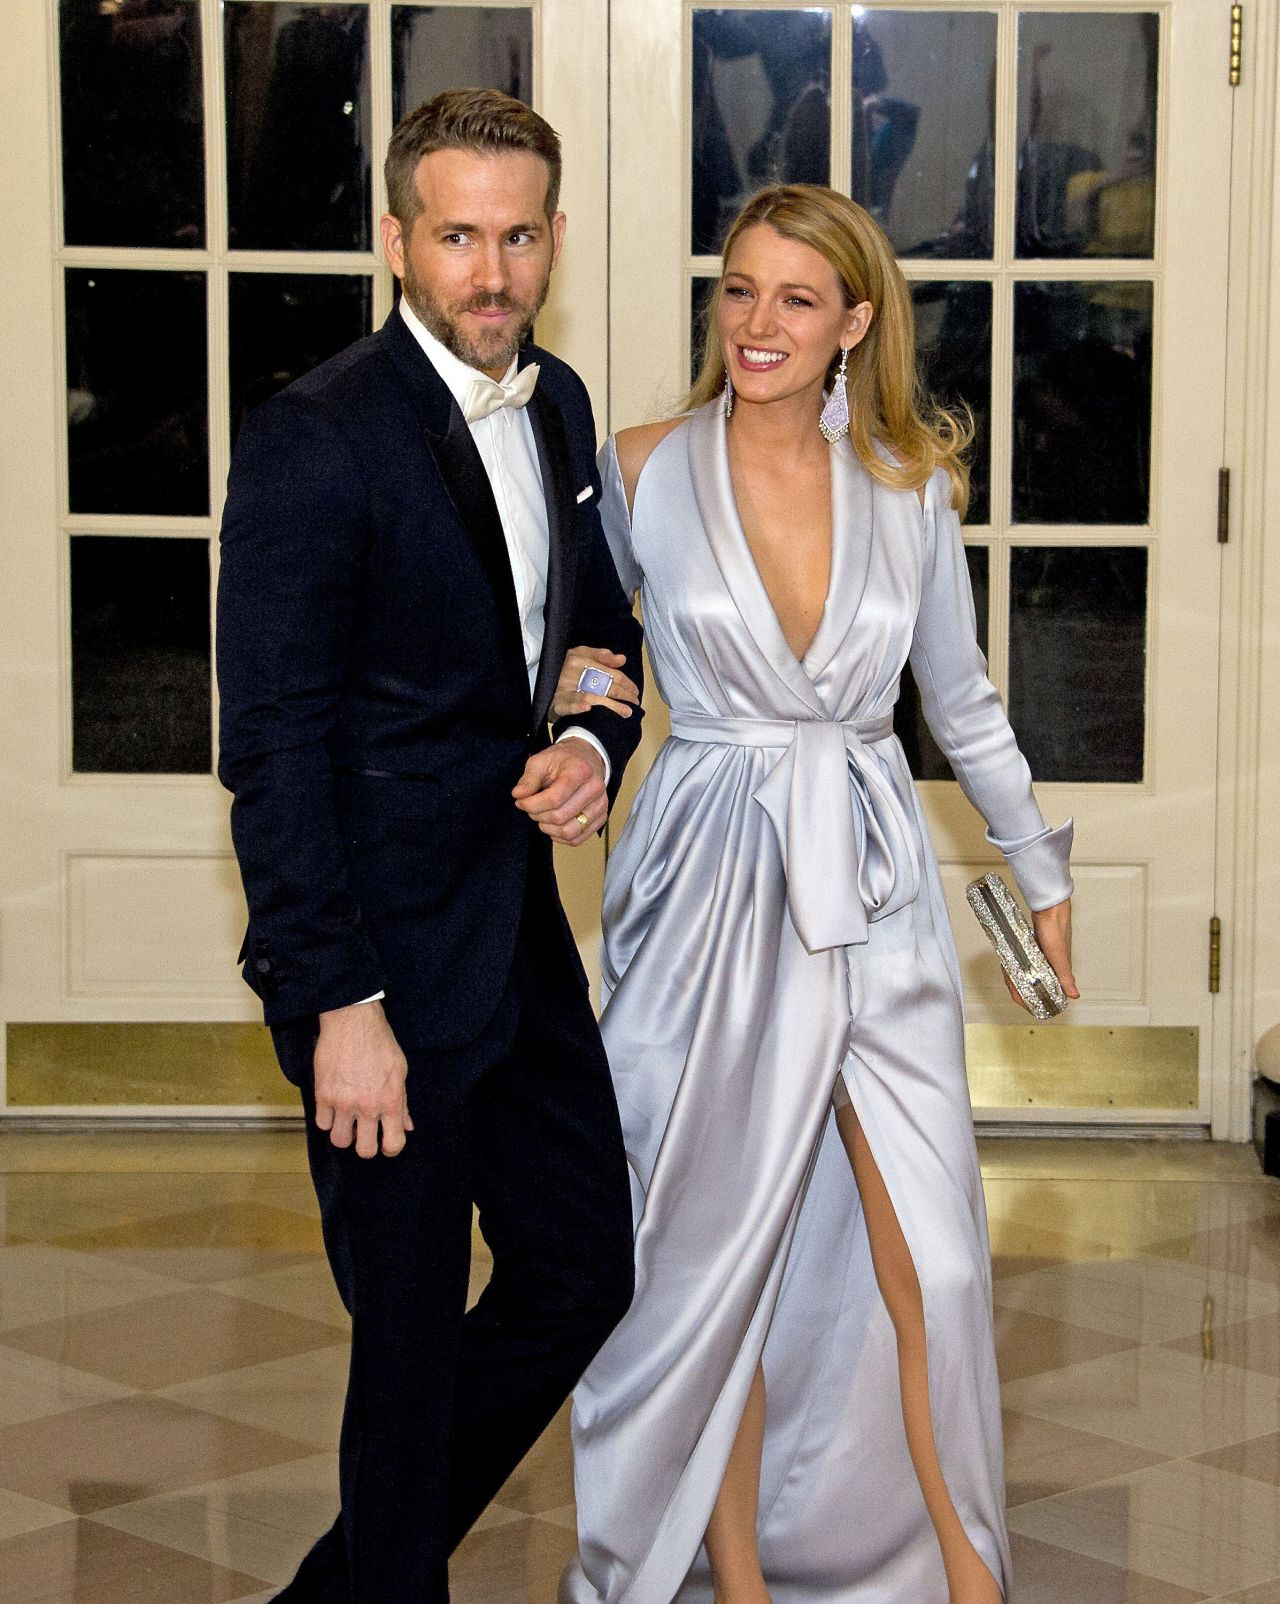 blake-lively-trudeau-state-dinner-in-washington-dc-3-10-2016-4